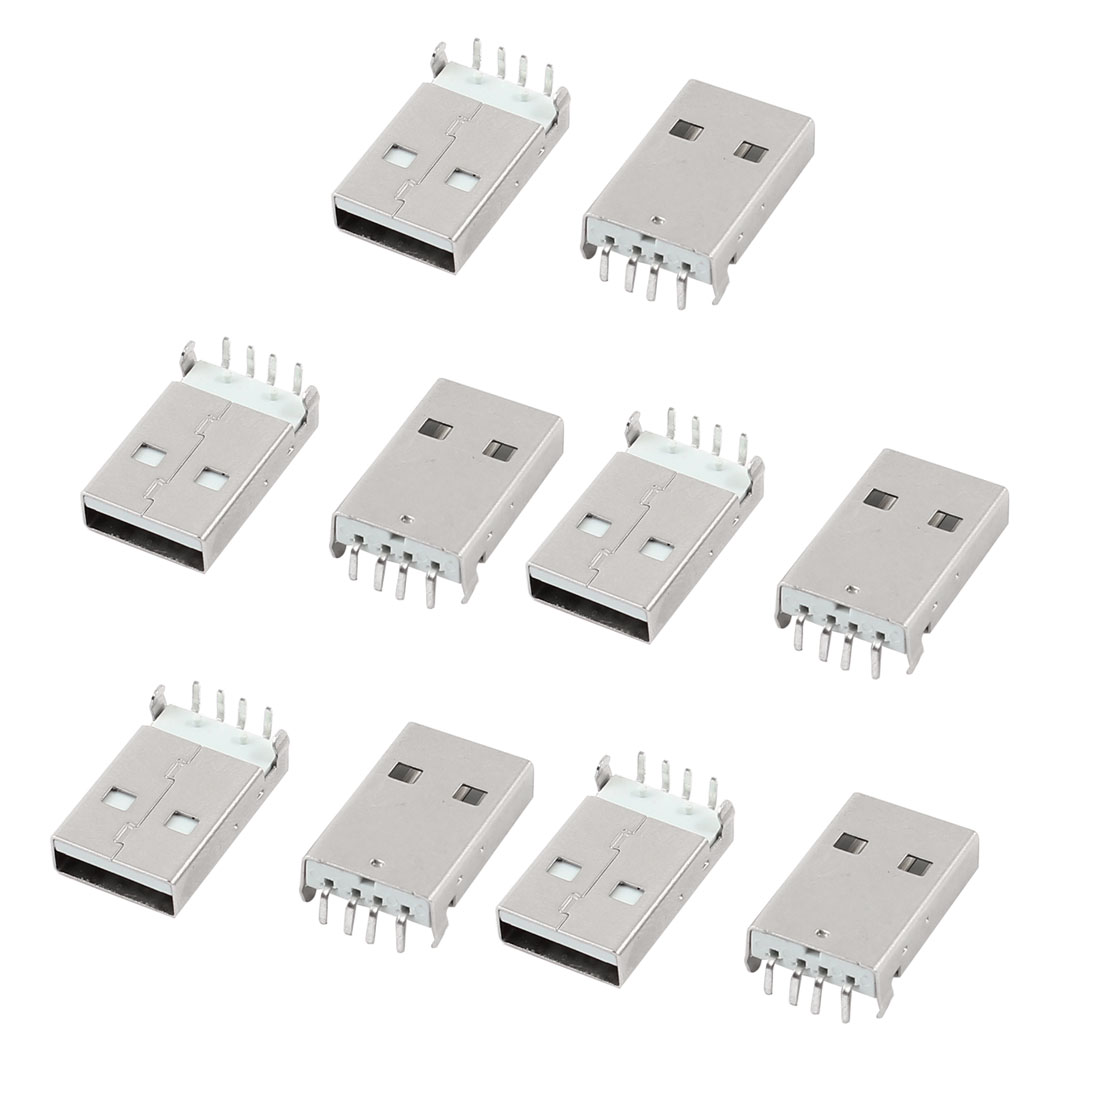 Right Angle 4 Pins PCB Mounting Type A USB 2.0 Male Jack Connector 10pcs